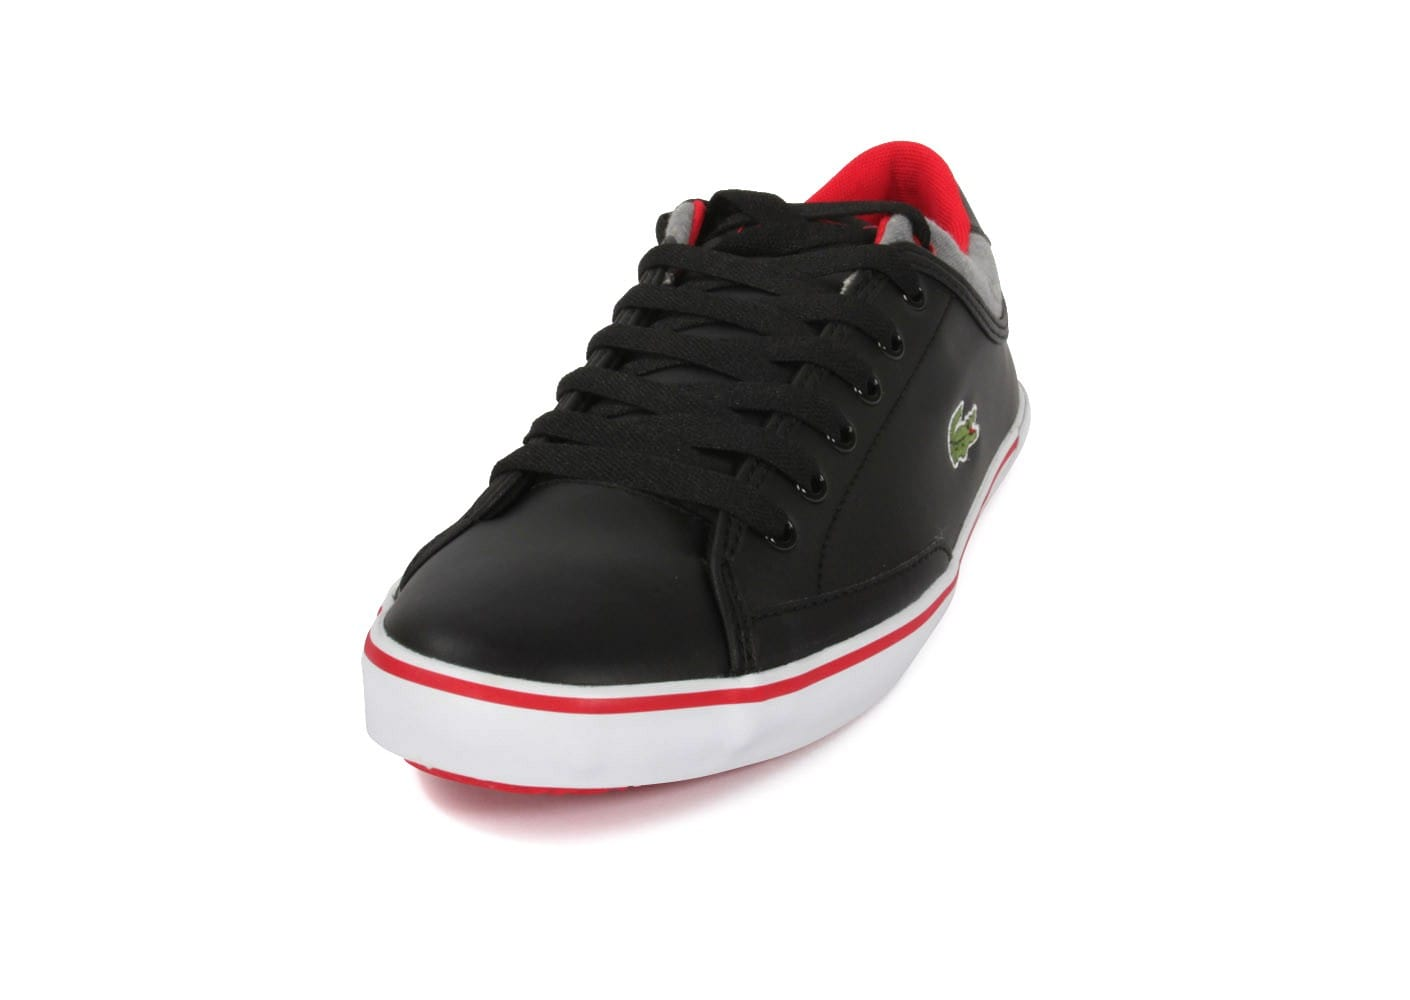 2b9c25715f3 homme Chausport Lacoste Chaussures Cuir Baskets Angha Noire wxYXrtzYq